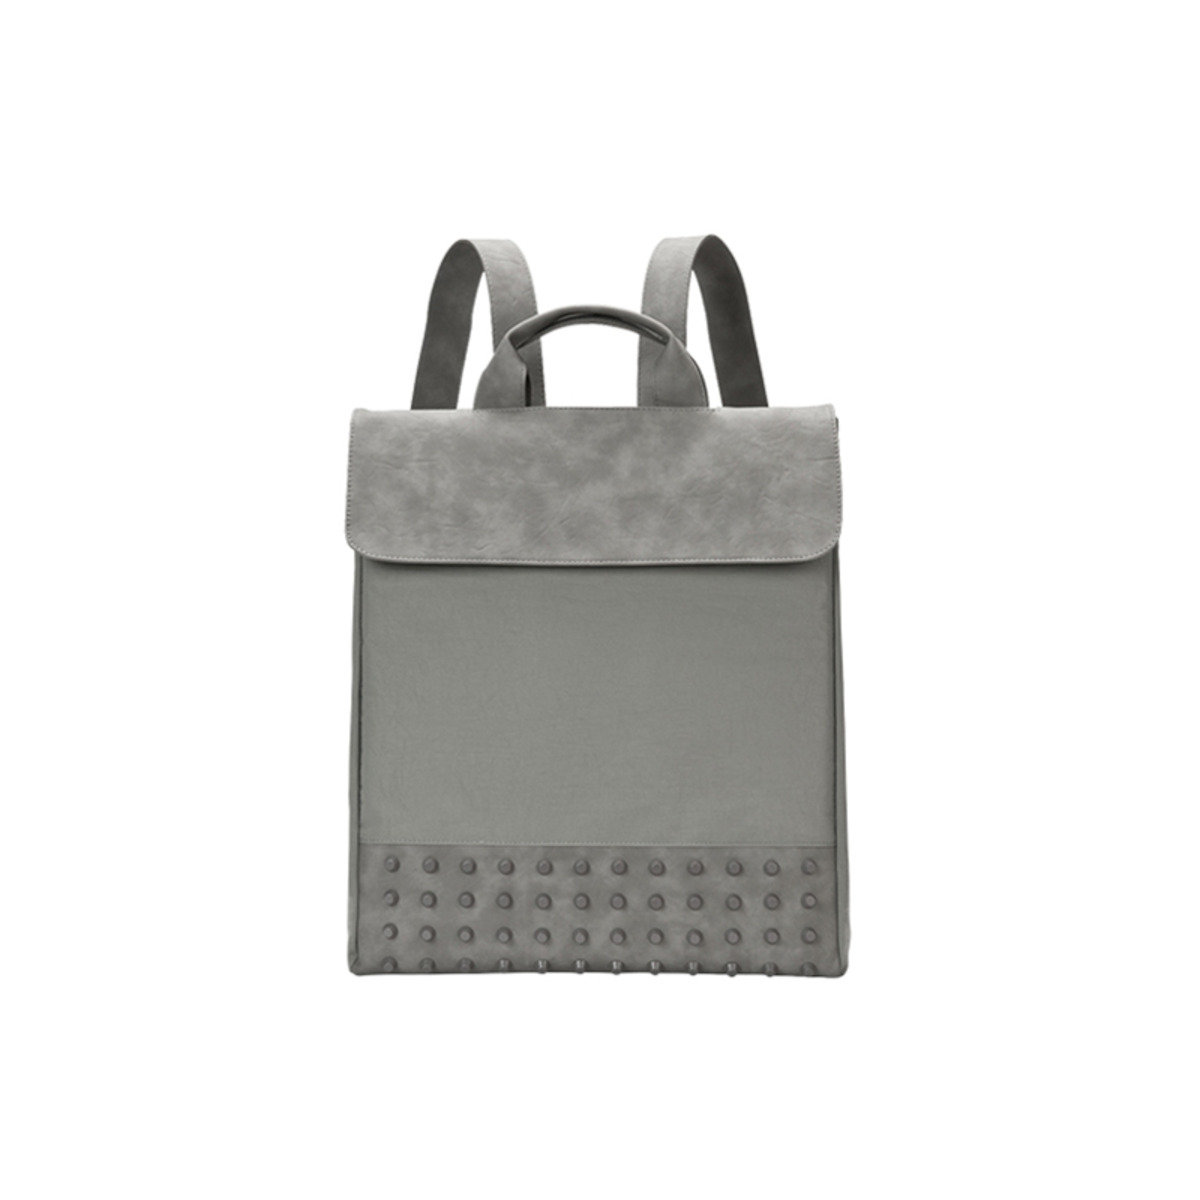 [THE HN] Grey Studs Backpack Large 灰色翻蓋背包 (大)